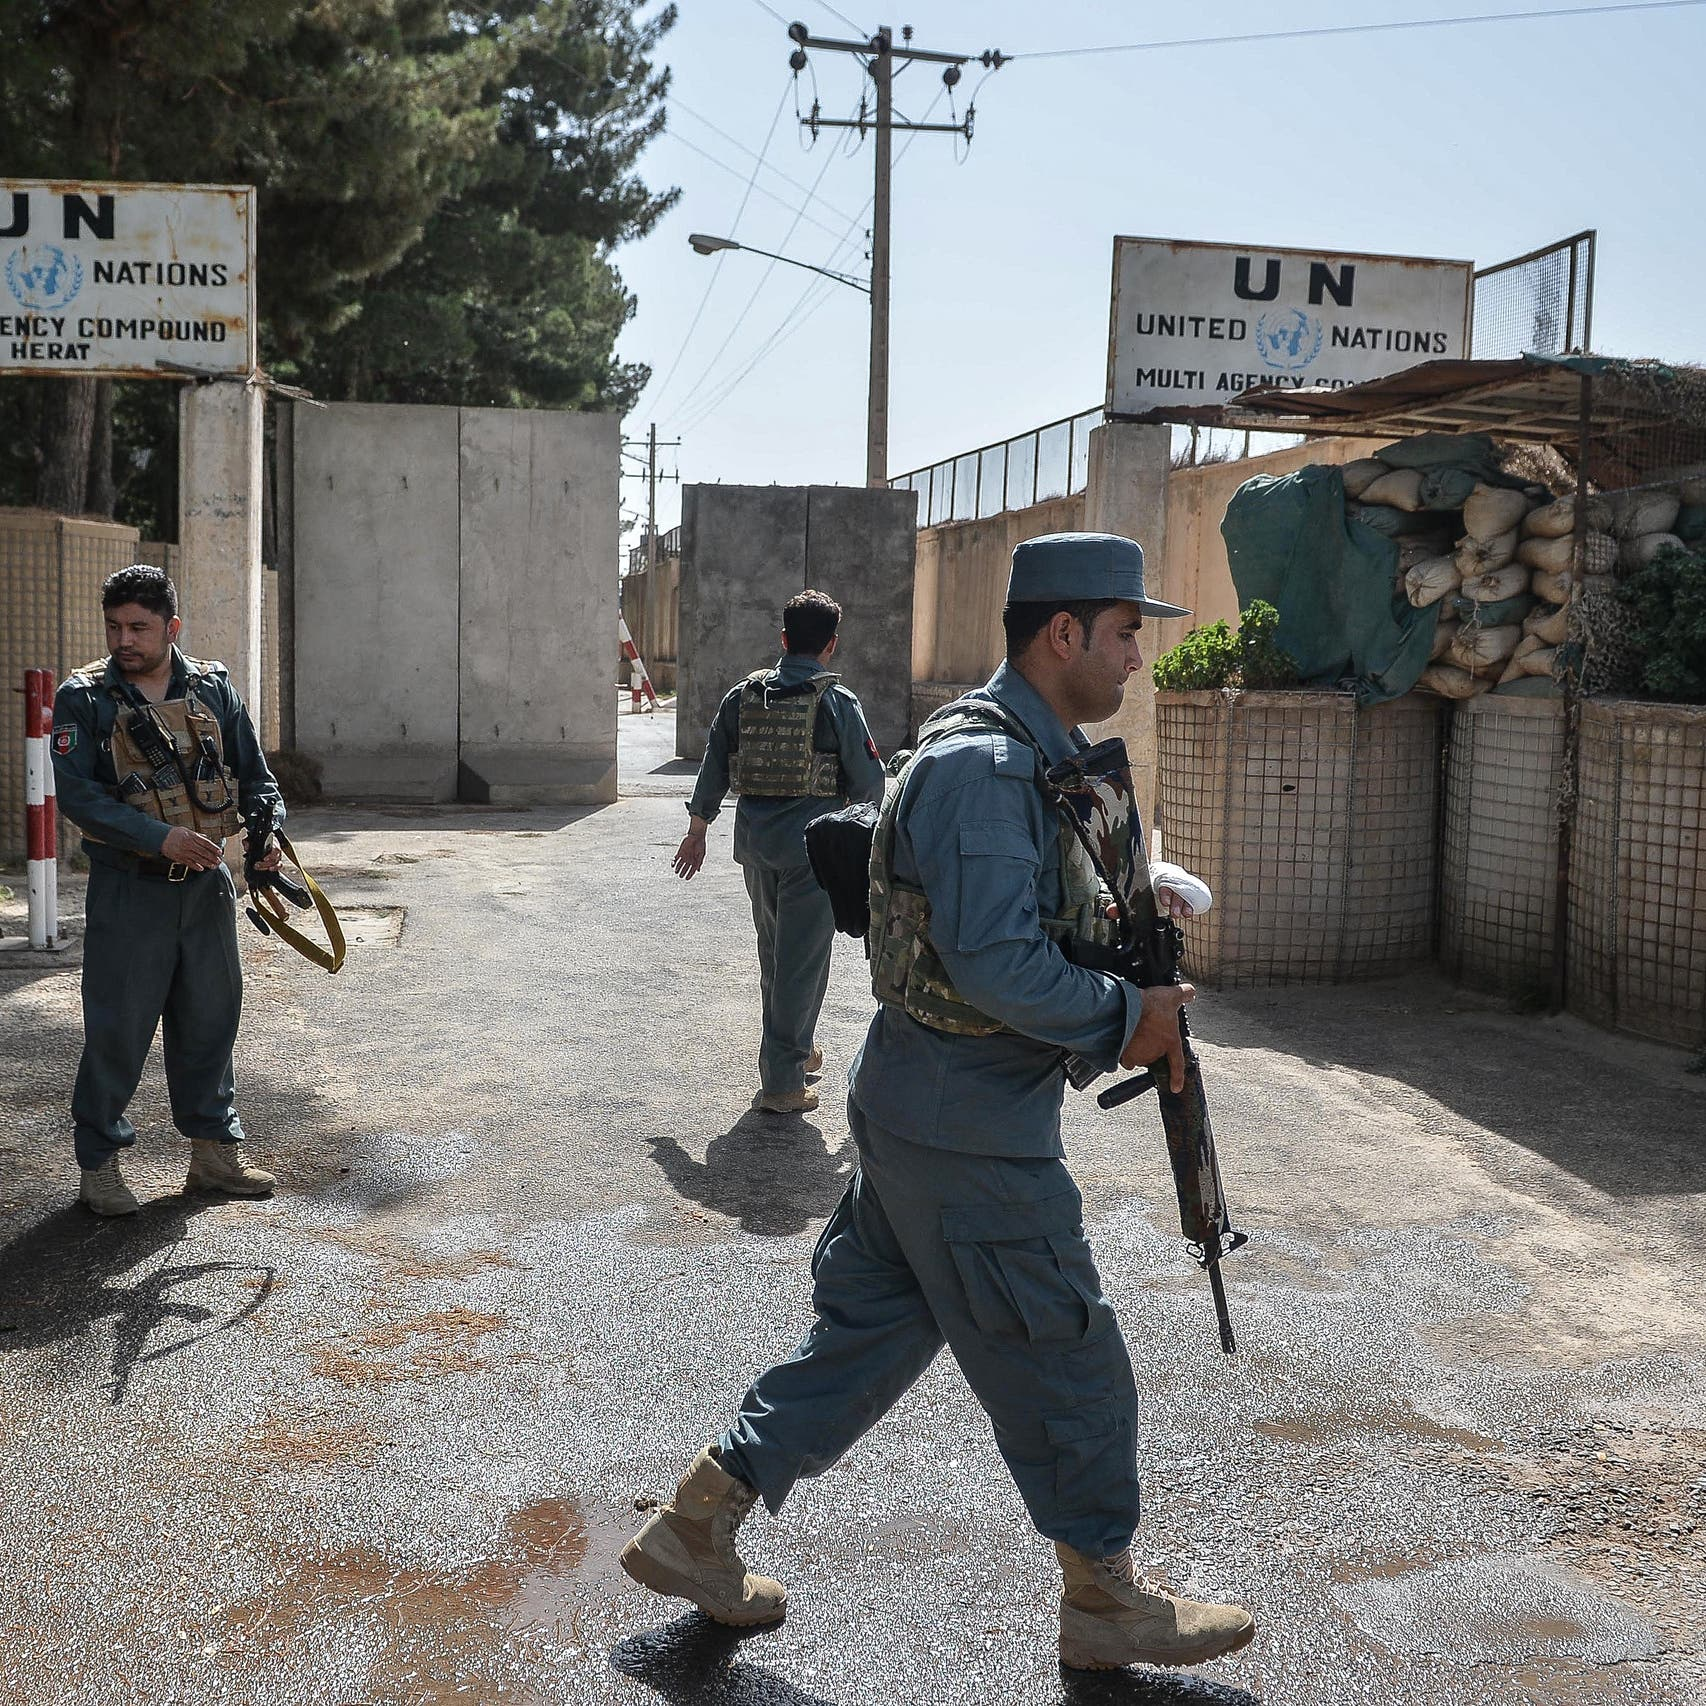 Taliban and Afghan forces clash again on outskirts of Herat city